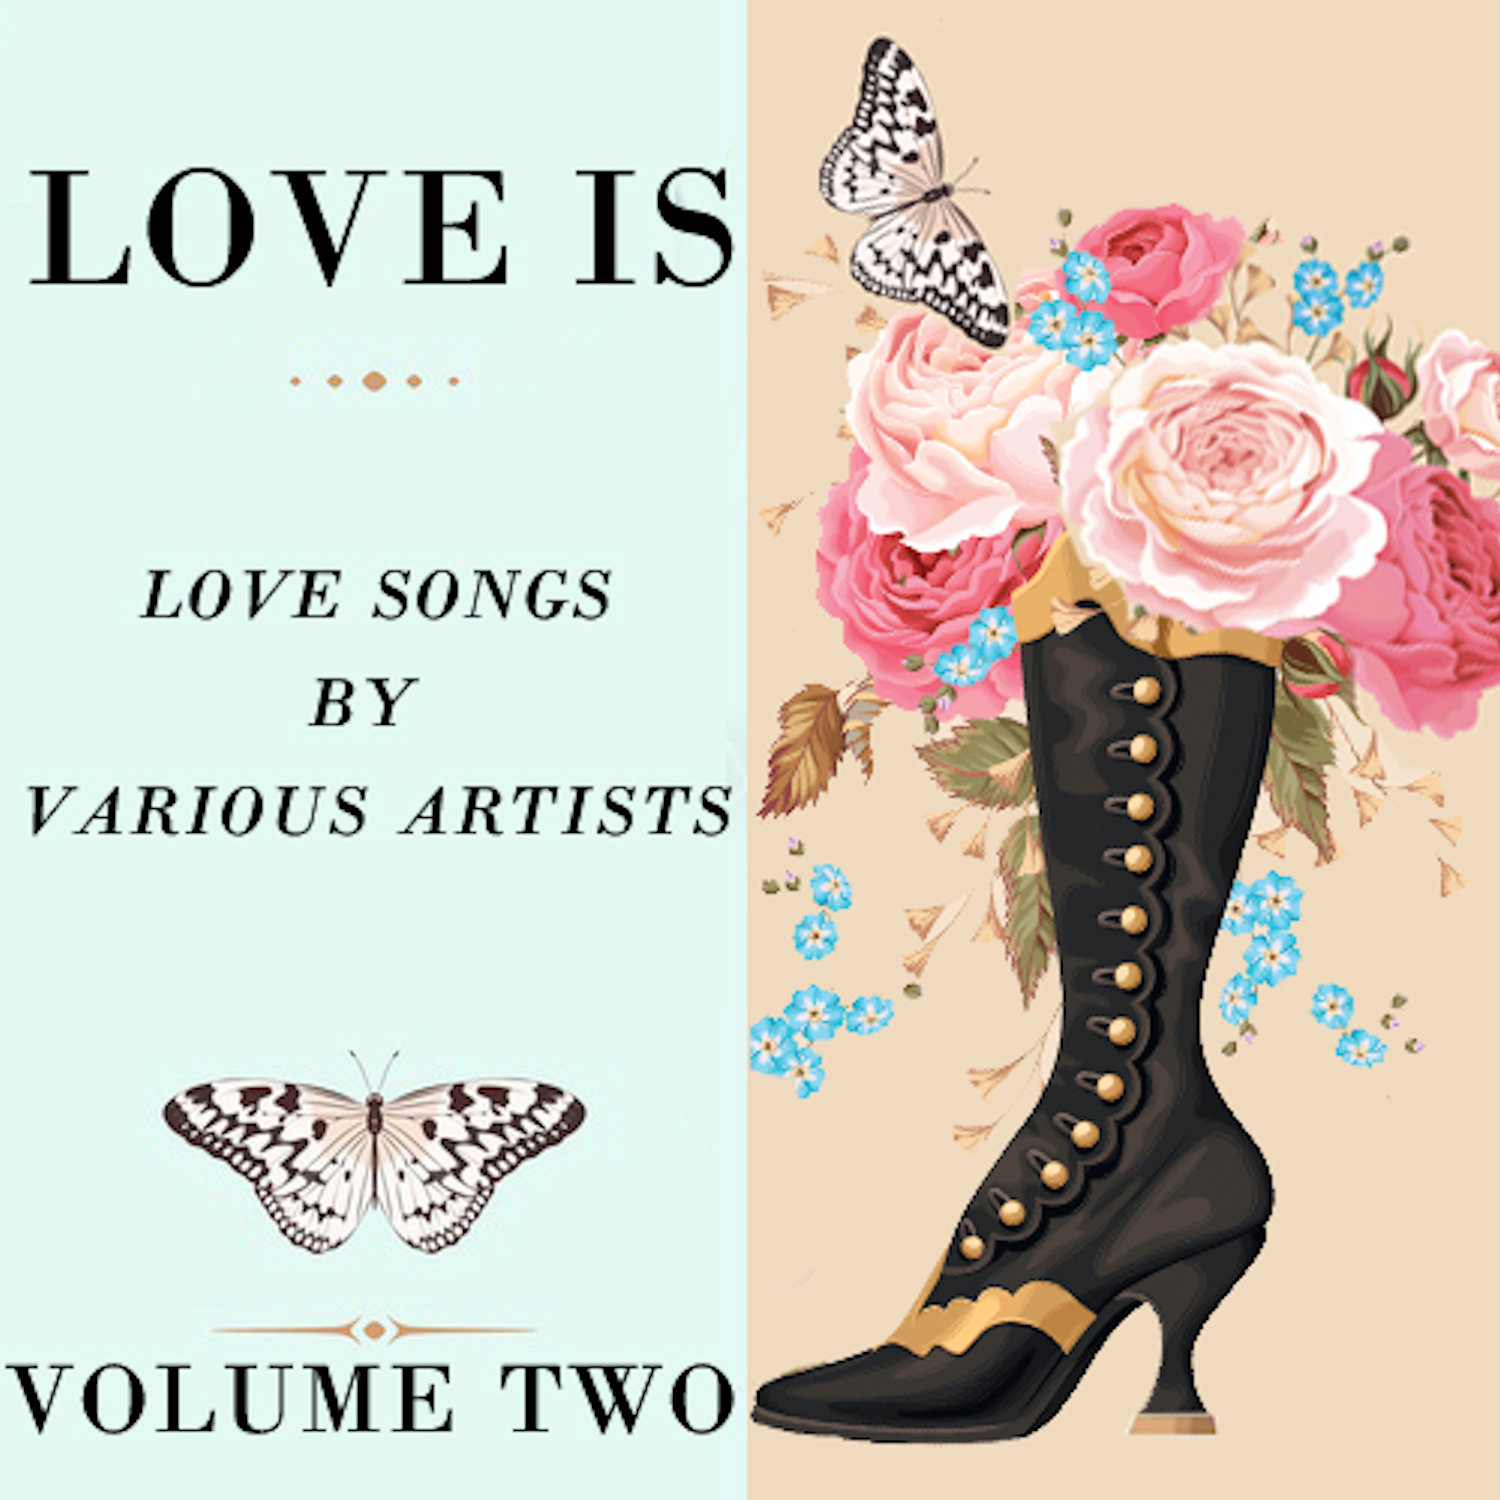 Love Is Volume Two